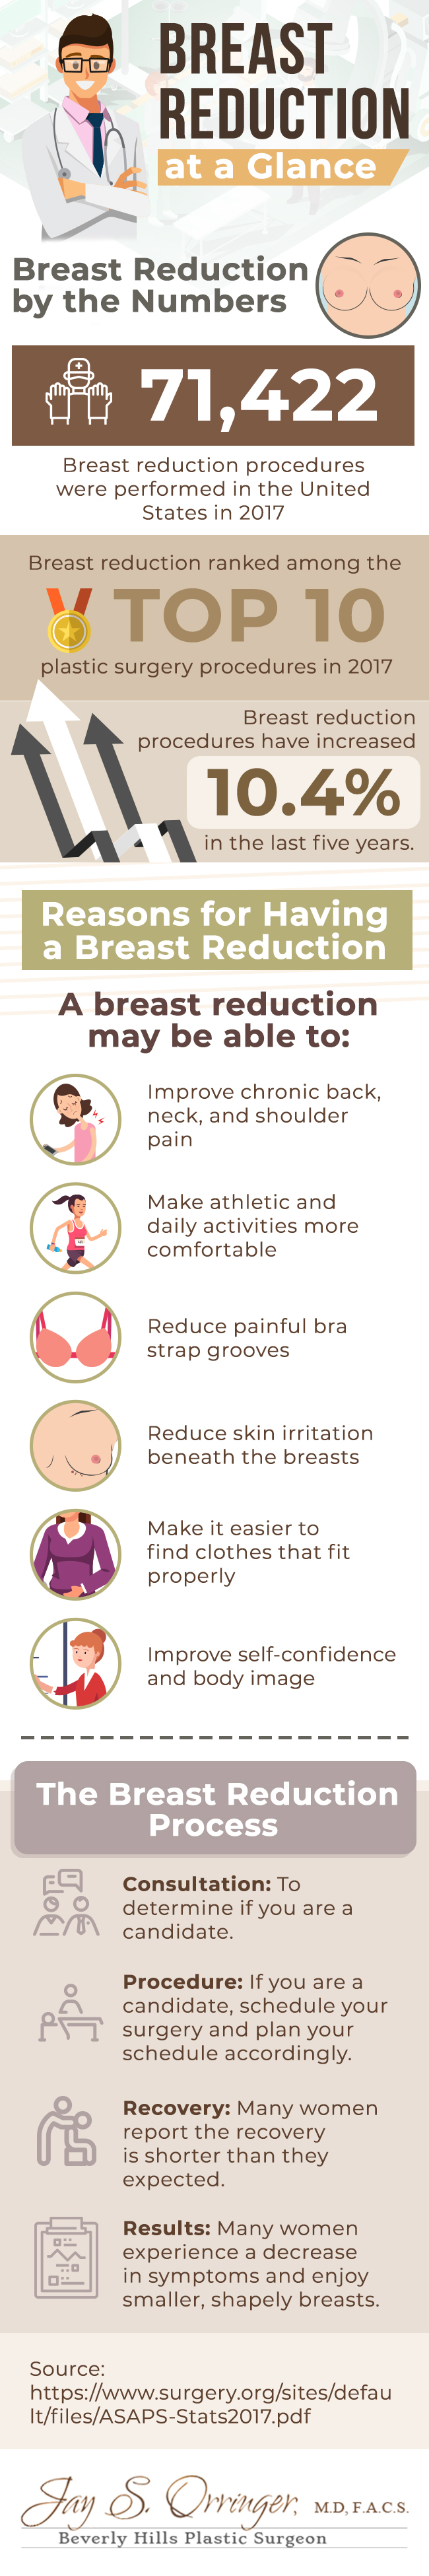 Breast reduction infographic